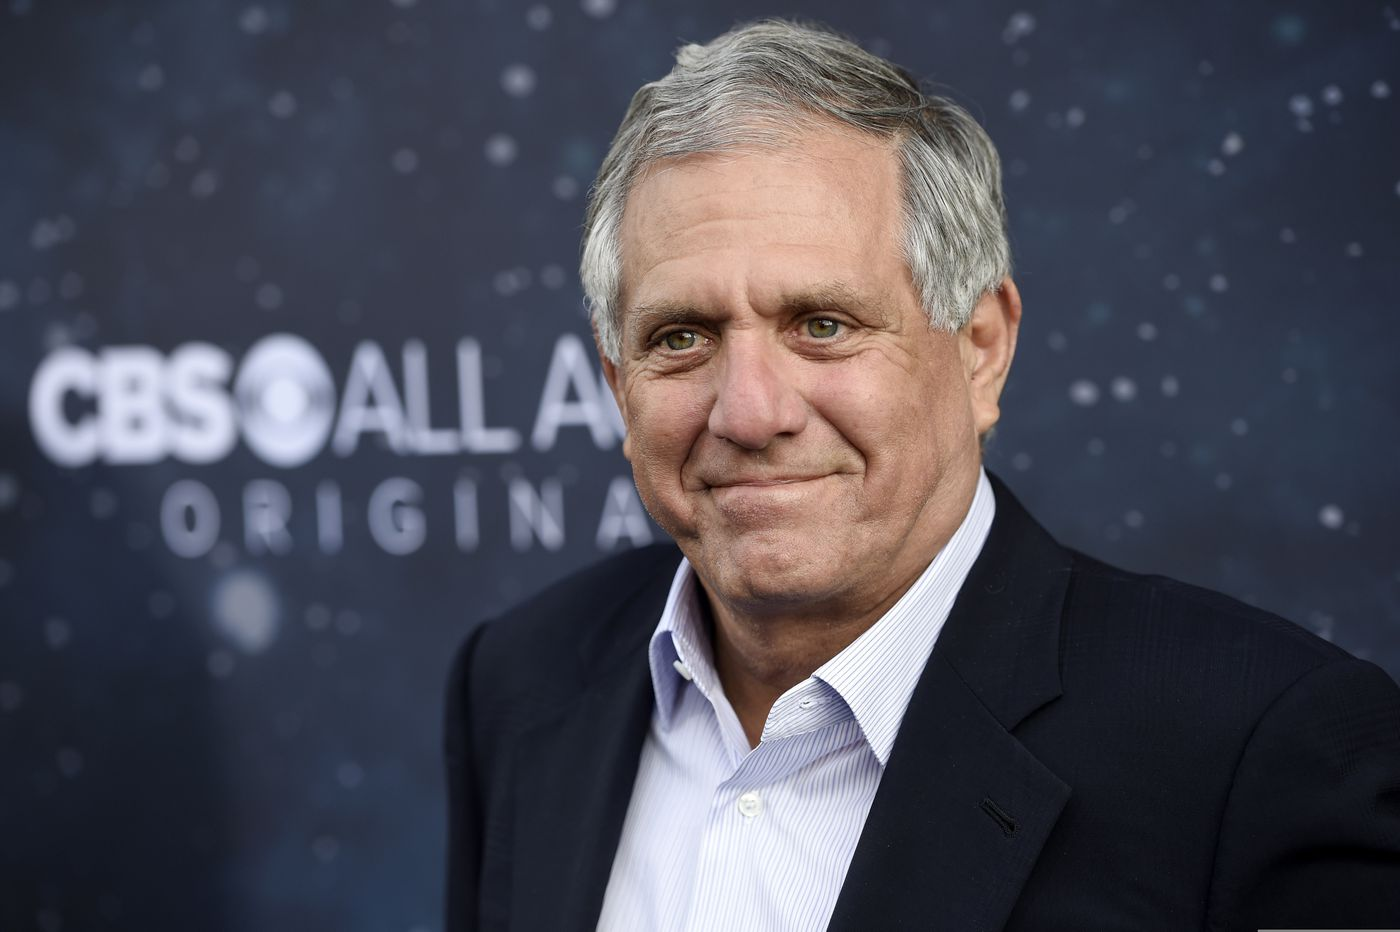 Report: Moonves obstructed sexual misconduct investigation